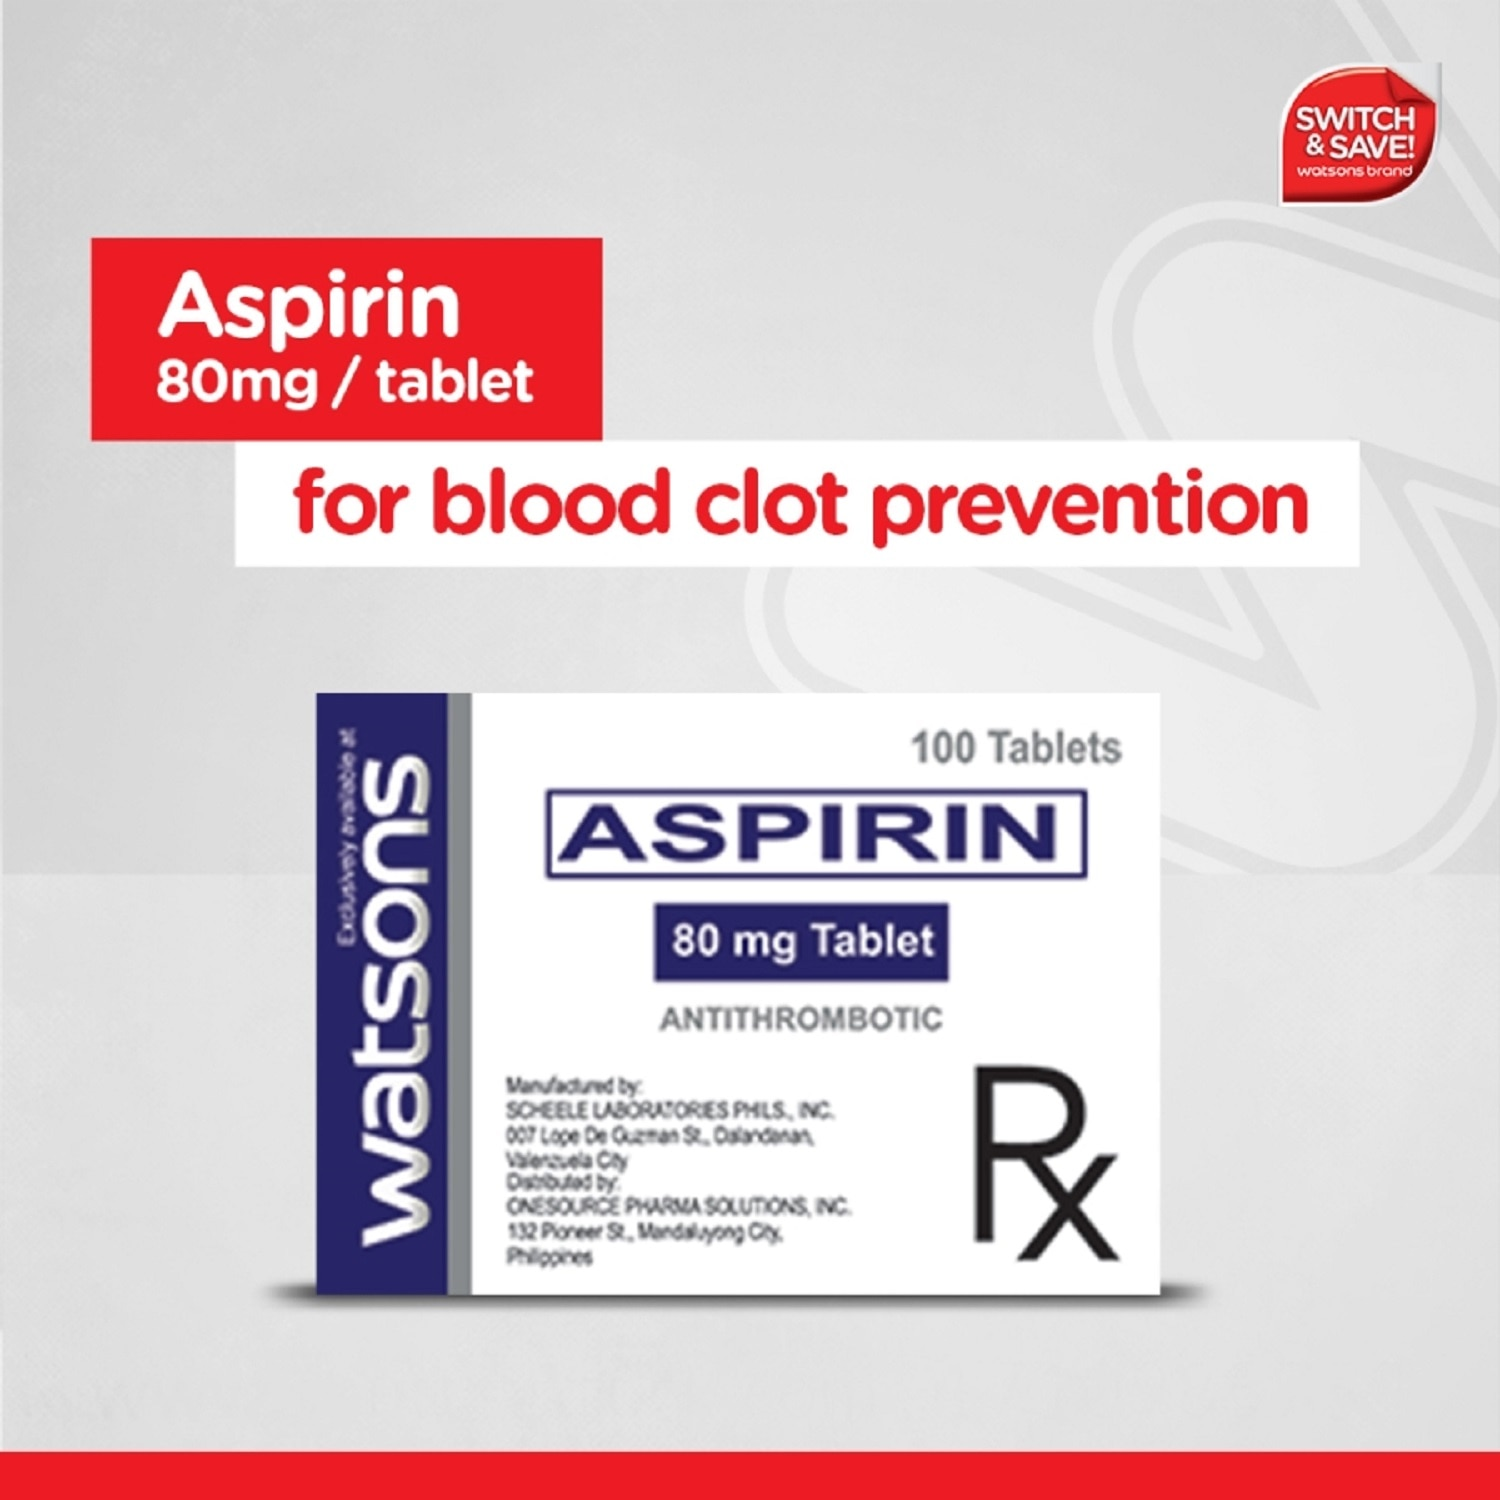 WATSONSAspirin 80mg 1 Tablet [PRESCRIPTION REQUIRED],Cardio HematoCOMPLY N SAVE BUY15 GET15% BUY30 OR MORE GET30%